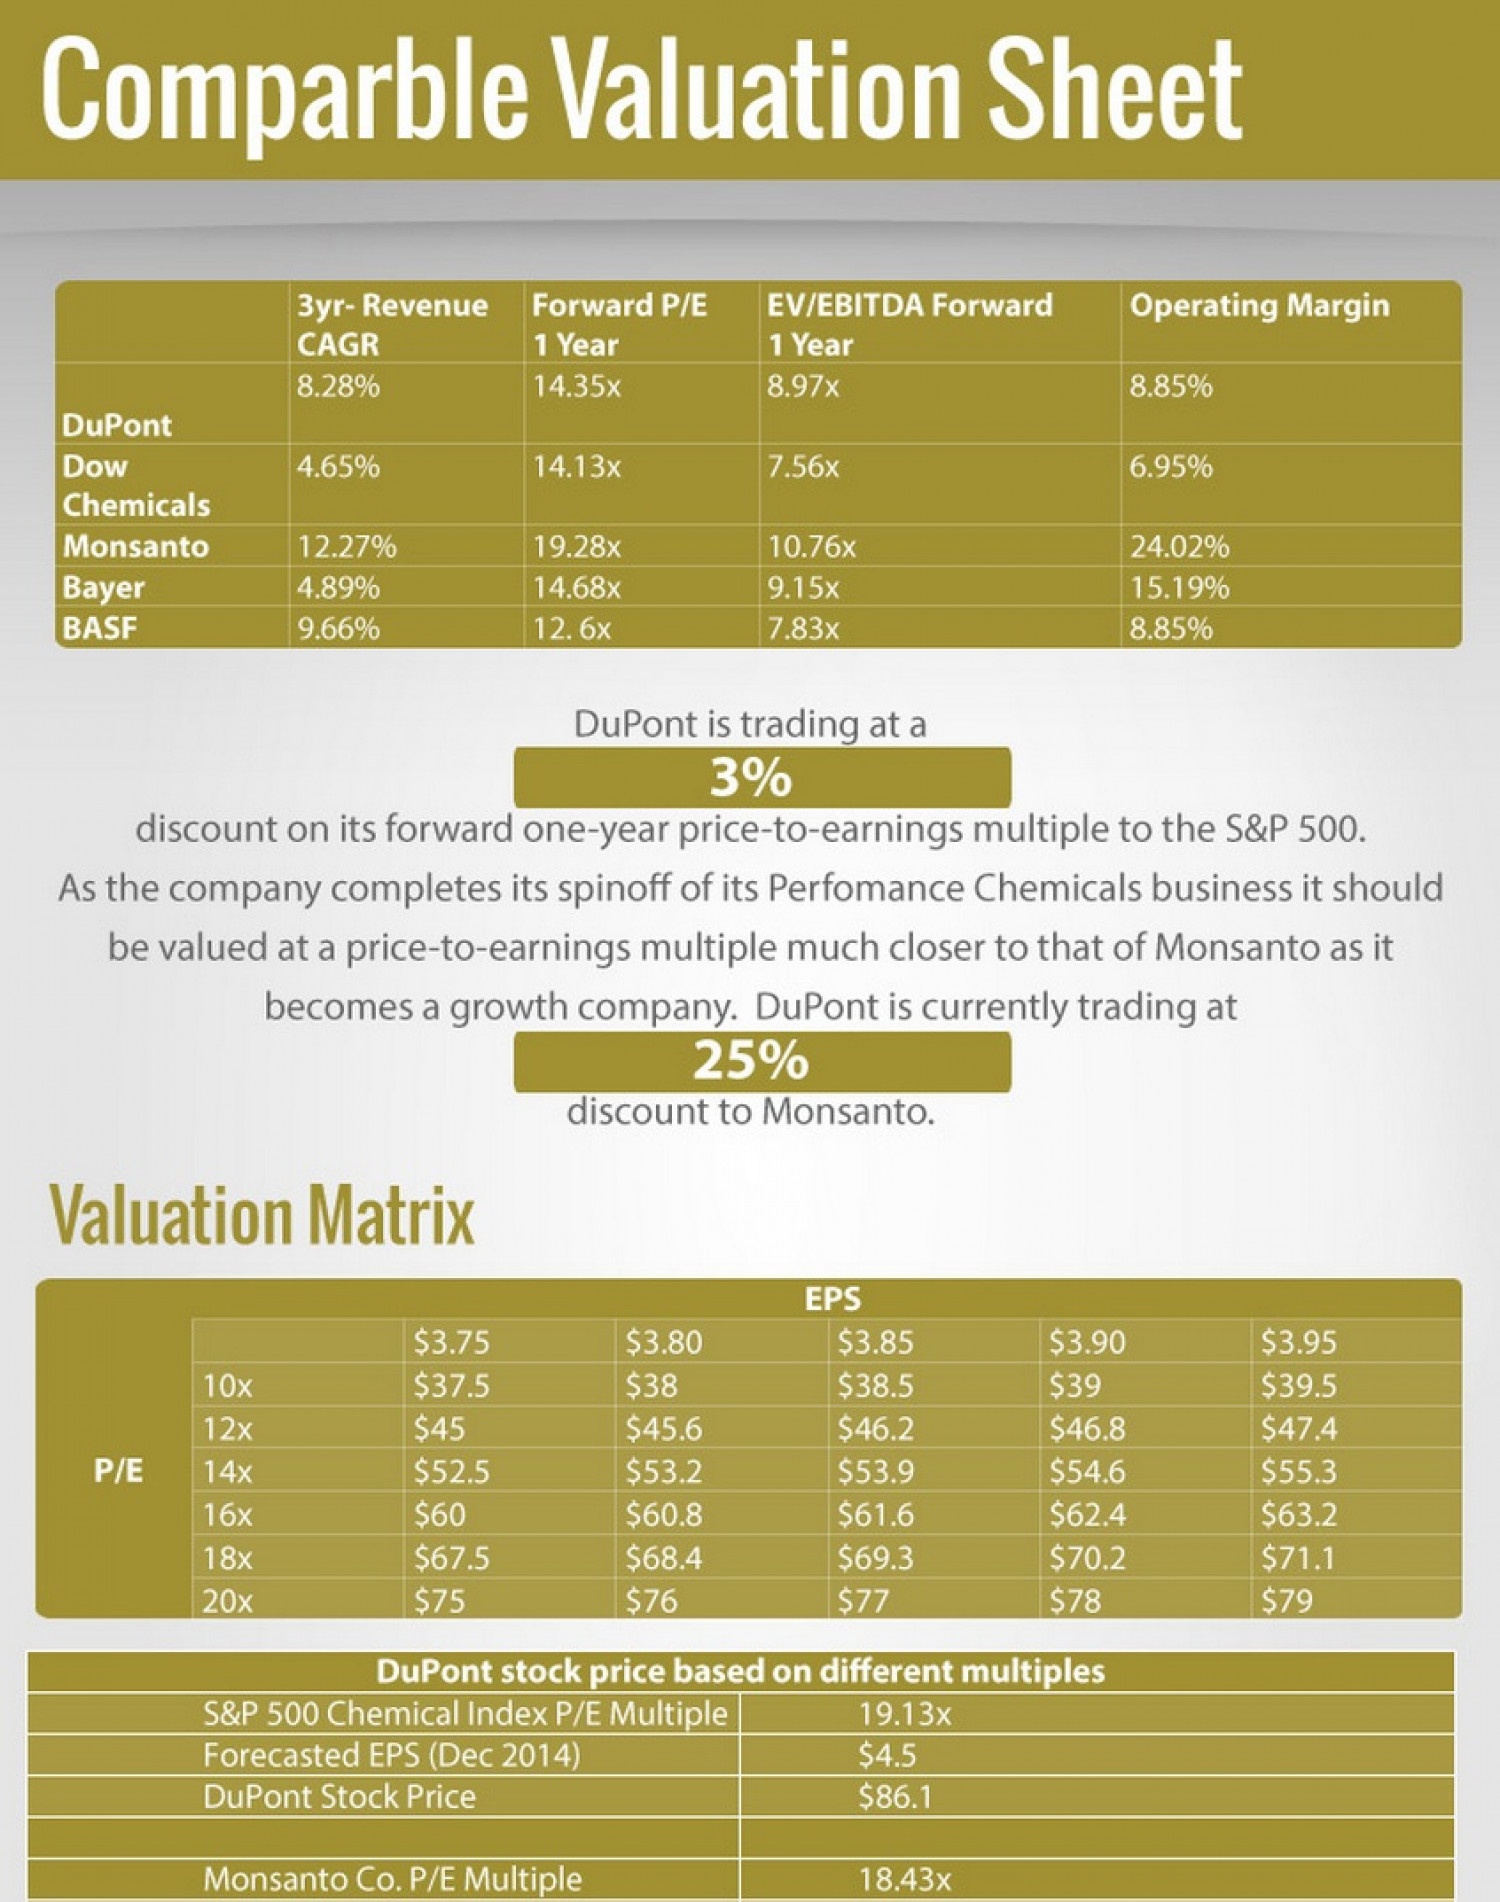 Dupont Valuation Sheet Infographic